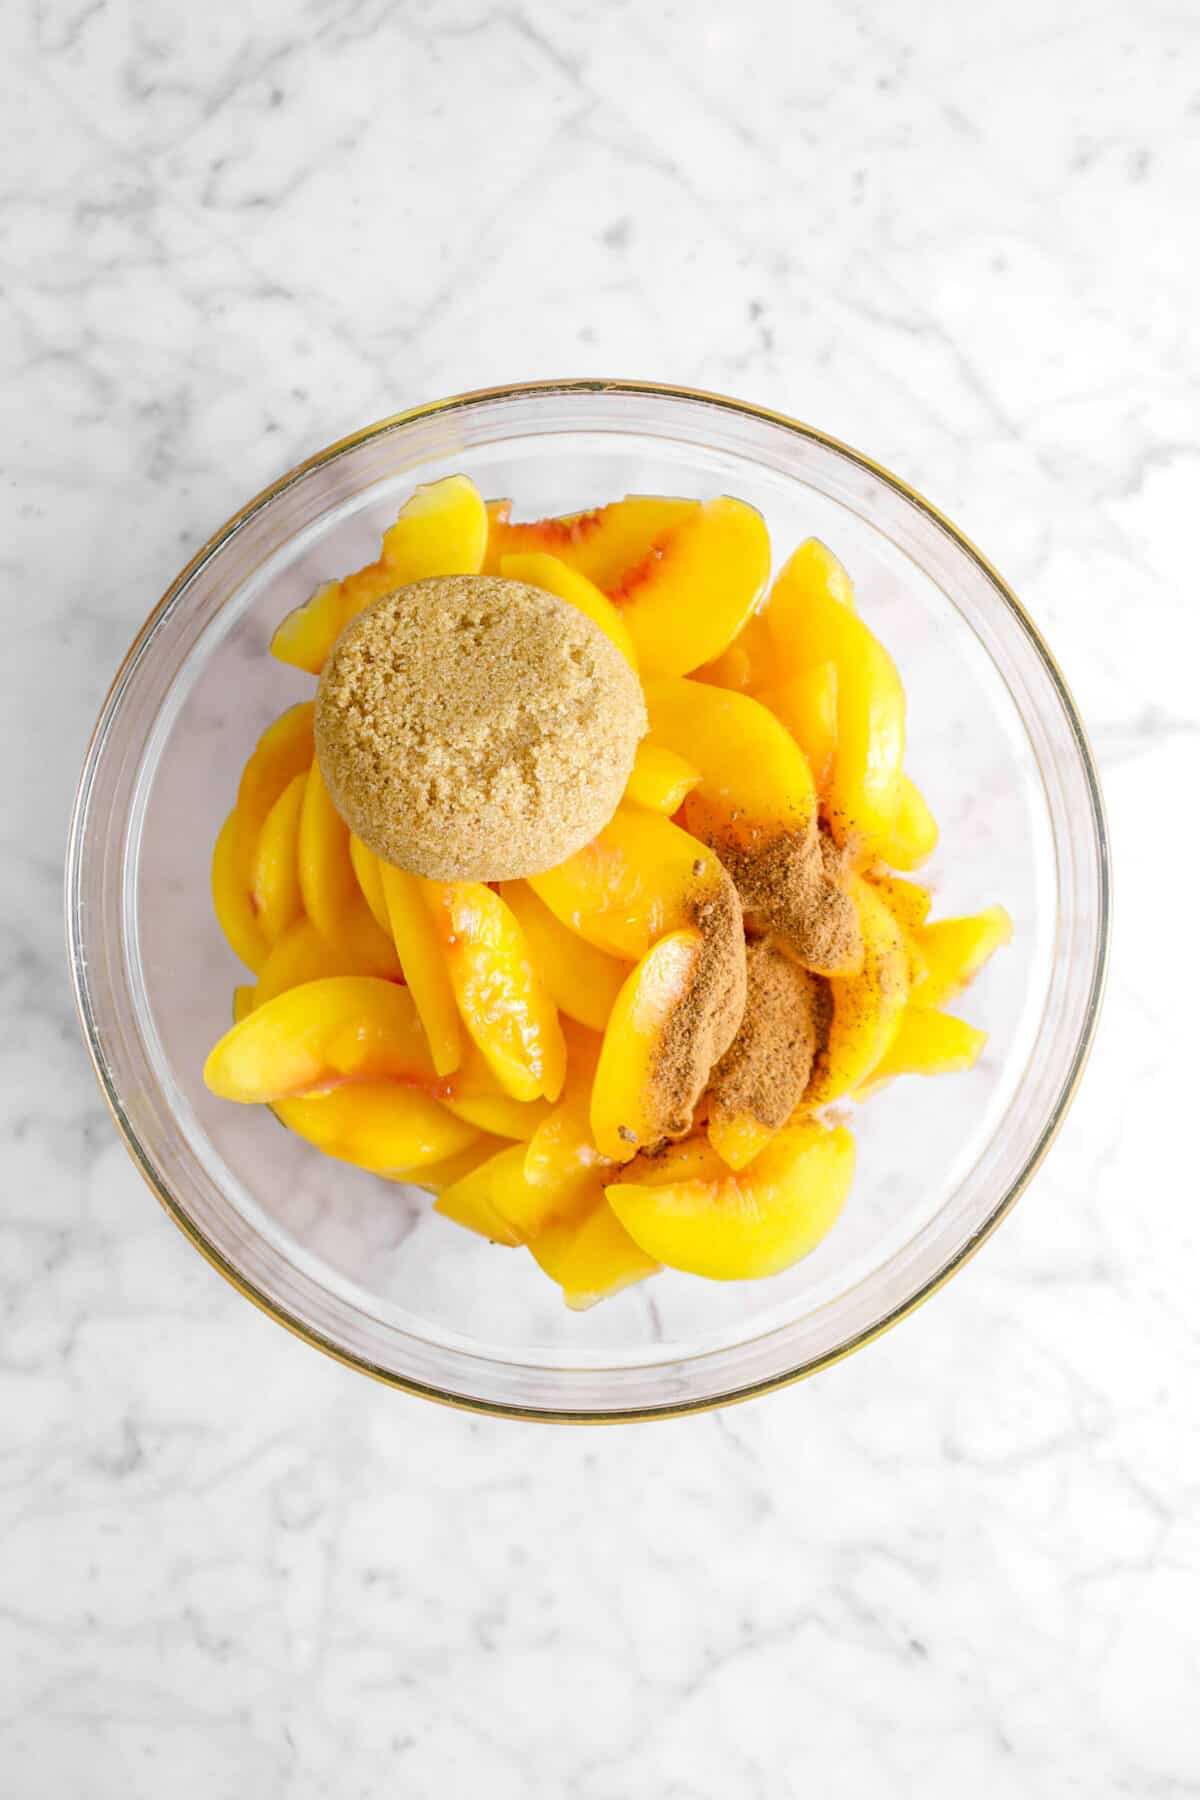 peach slices, ground nutmeg, and brown sugar in a bowl